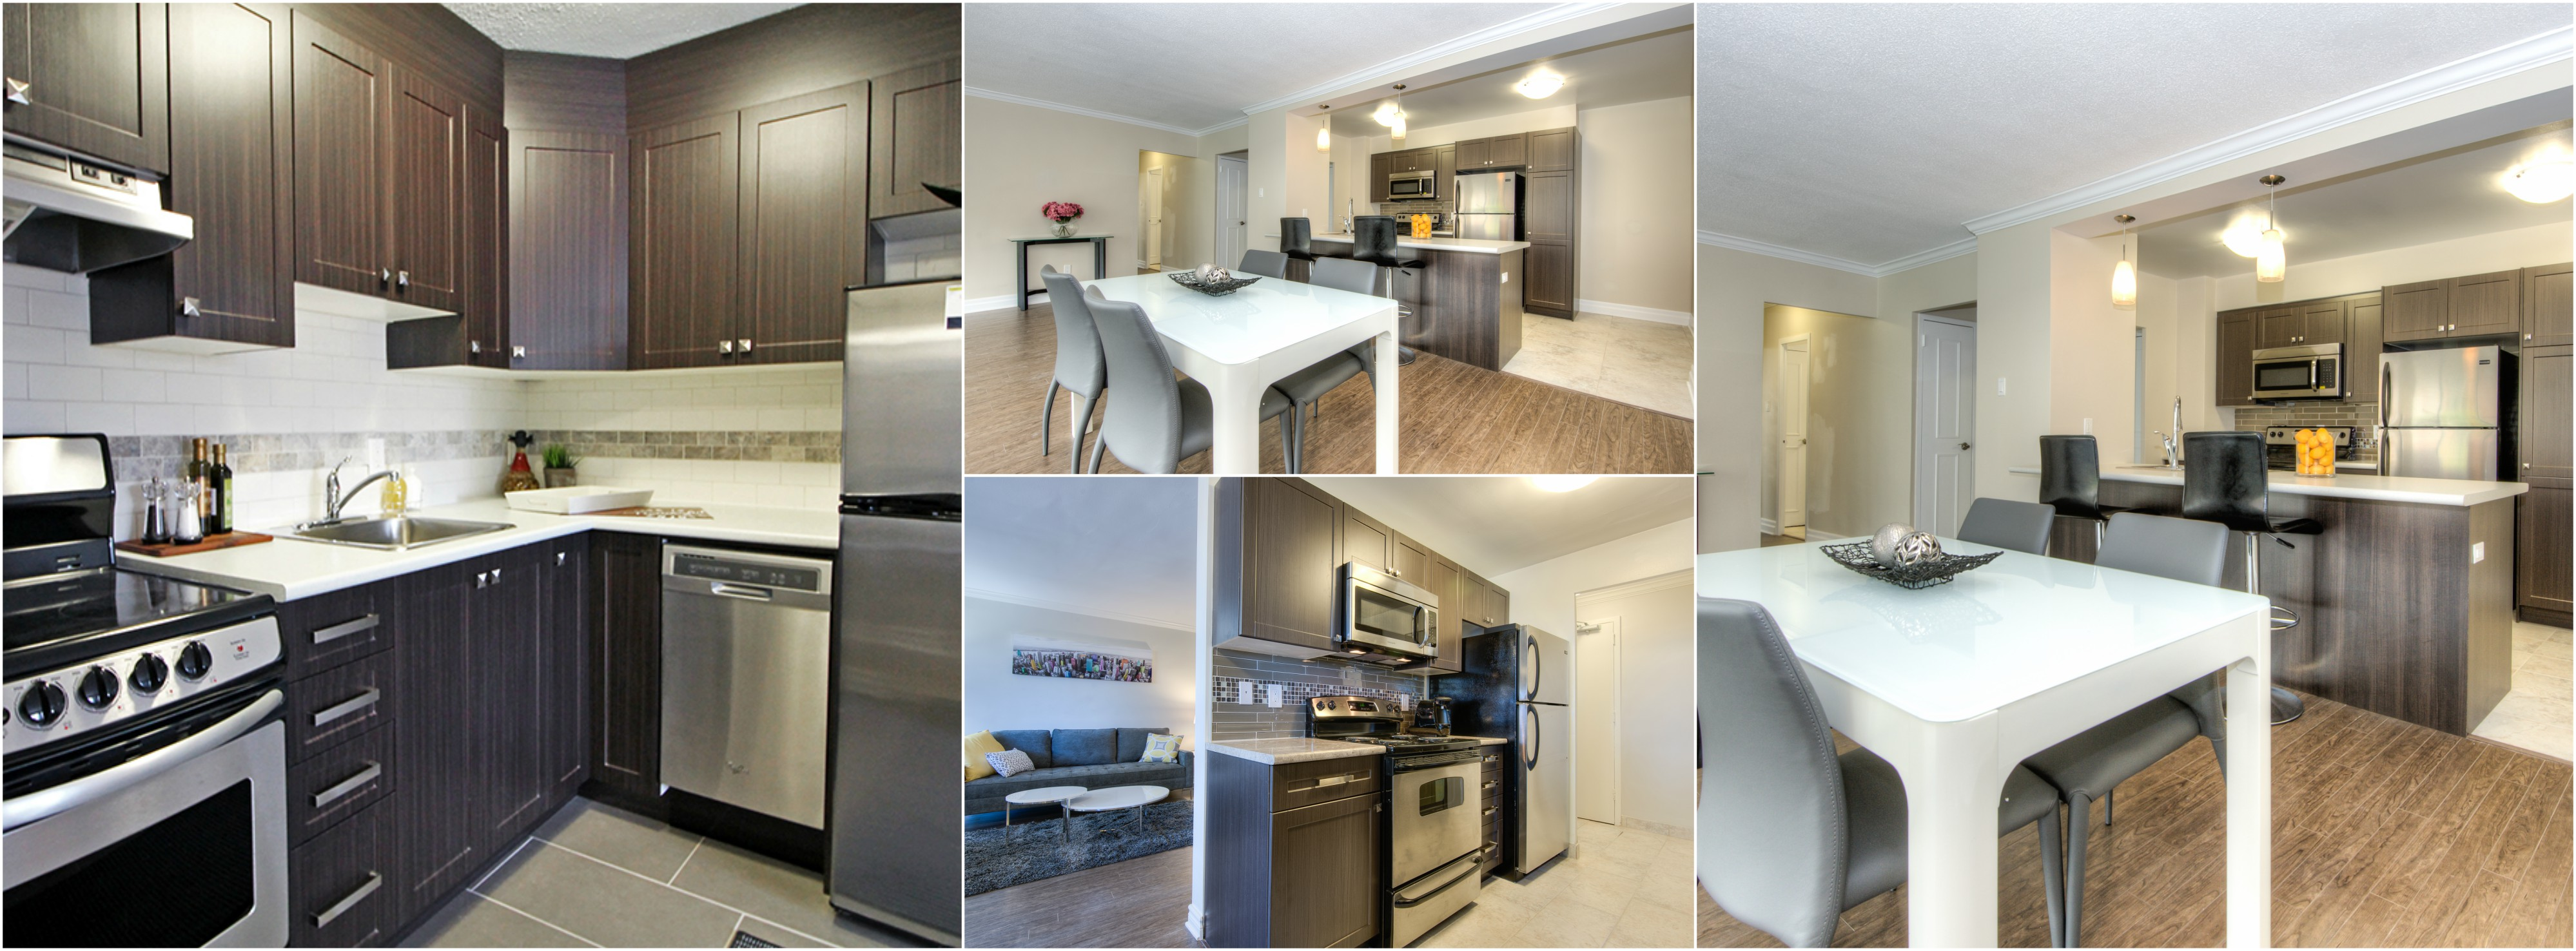 clv-group_how-to-keep-smiling-when-its-cold-outside_apartments-for-rent_renovated-kitchen